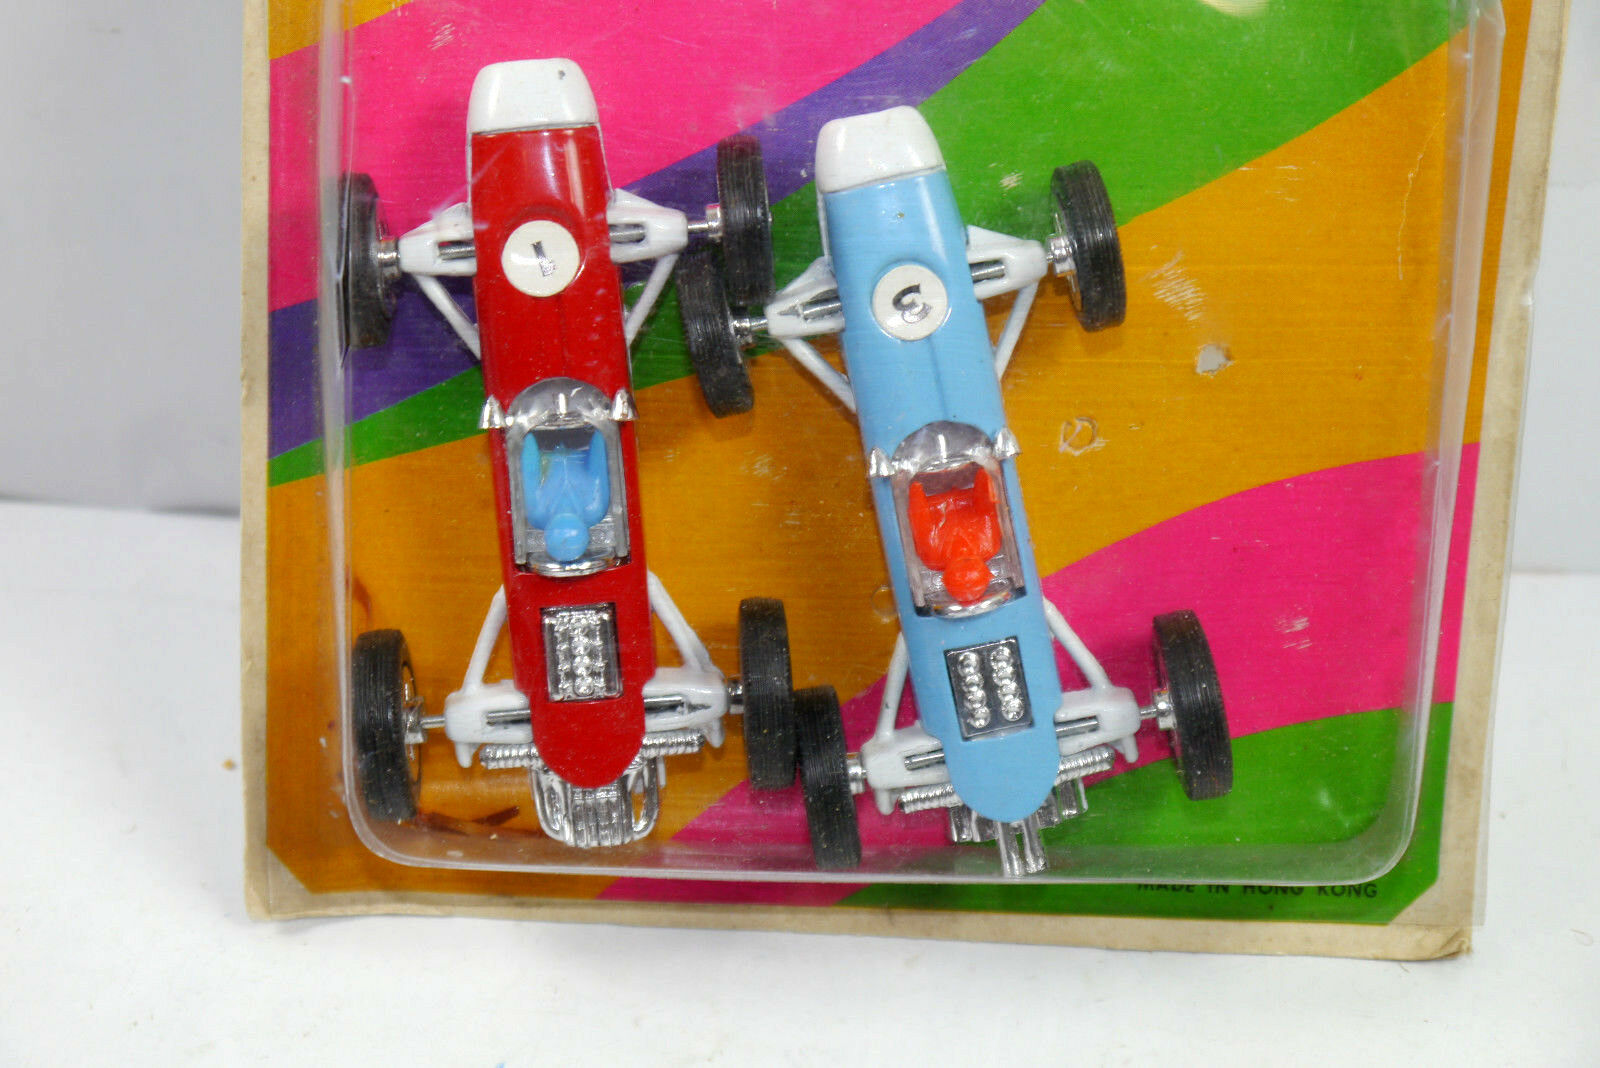 RACING CAR SERIES 2er 2er 2er Set Rennwagen Metall Autos ( Made in Hong Kong ) (K91) c7d48b